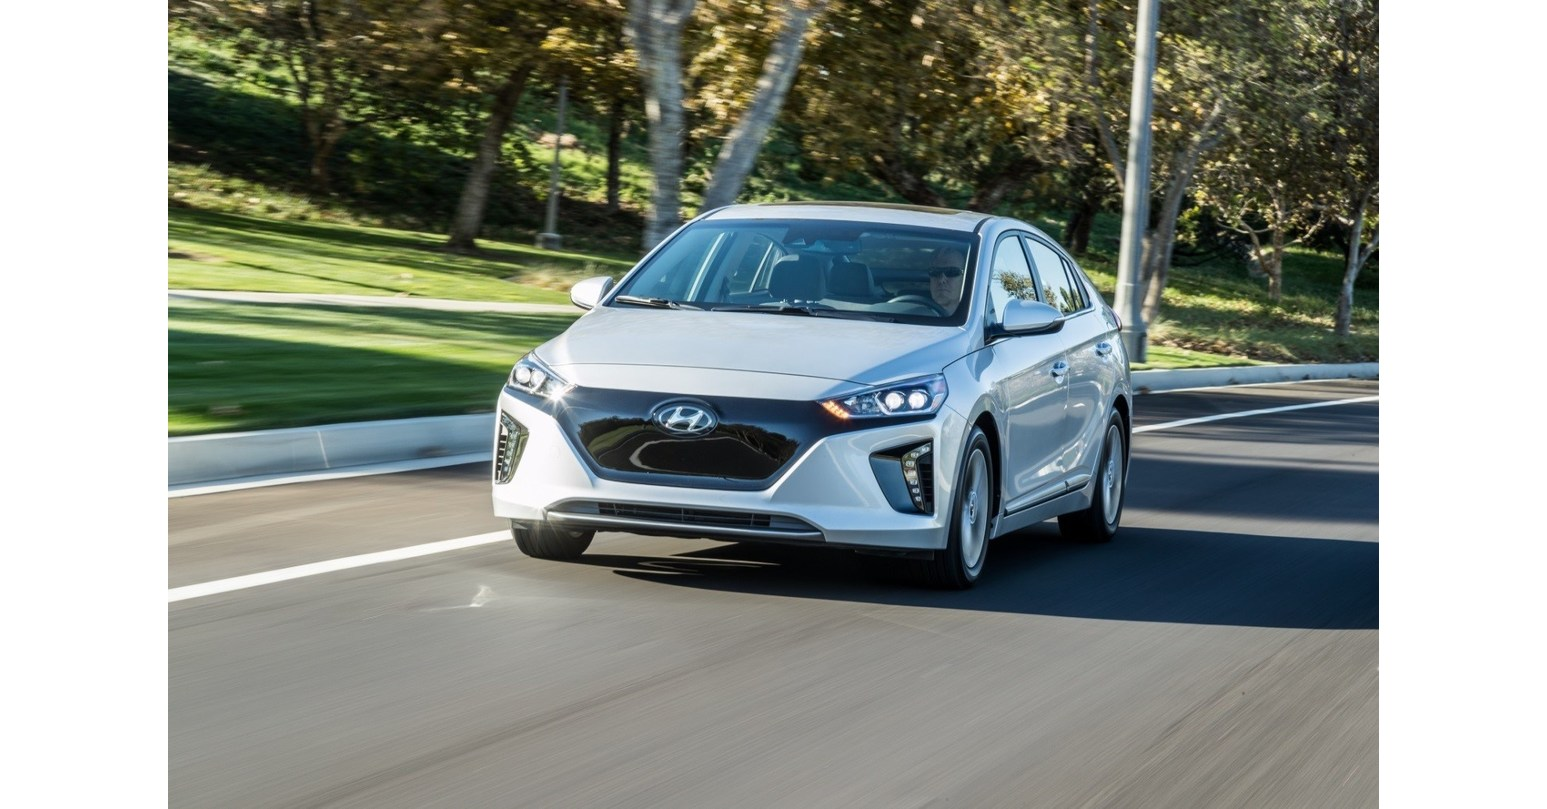 Hyundai motor company united states - Hyundai Motor America Adds Charging Century Of More Than 100 Charging Locations To Headquarters